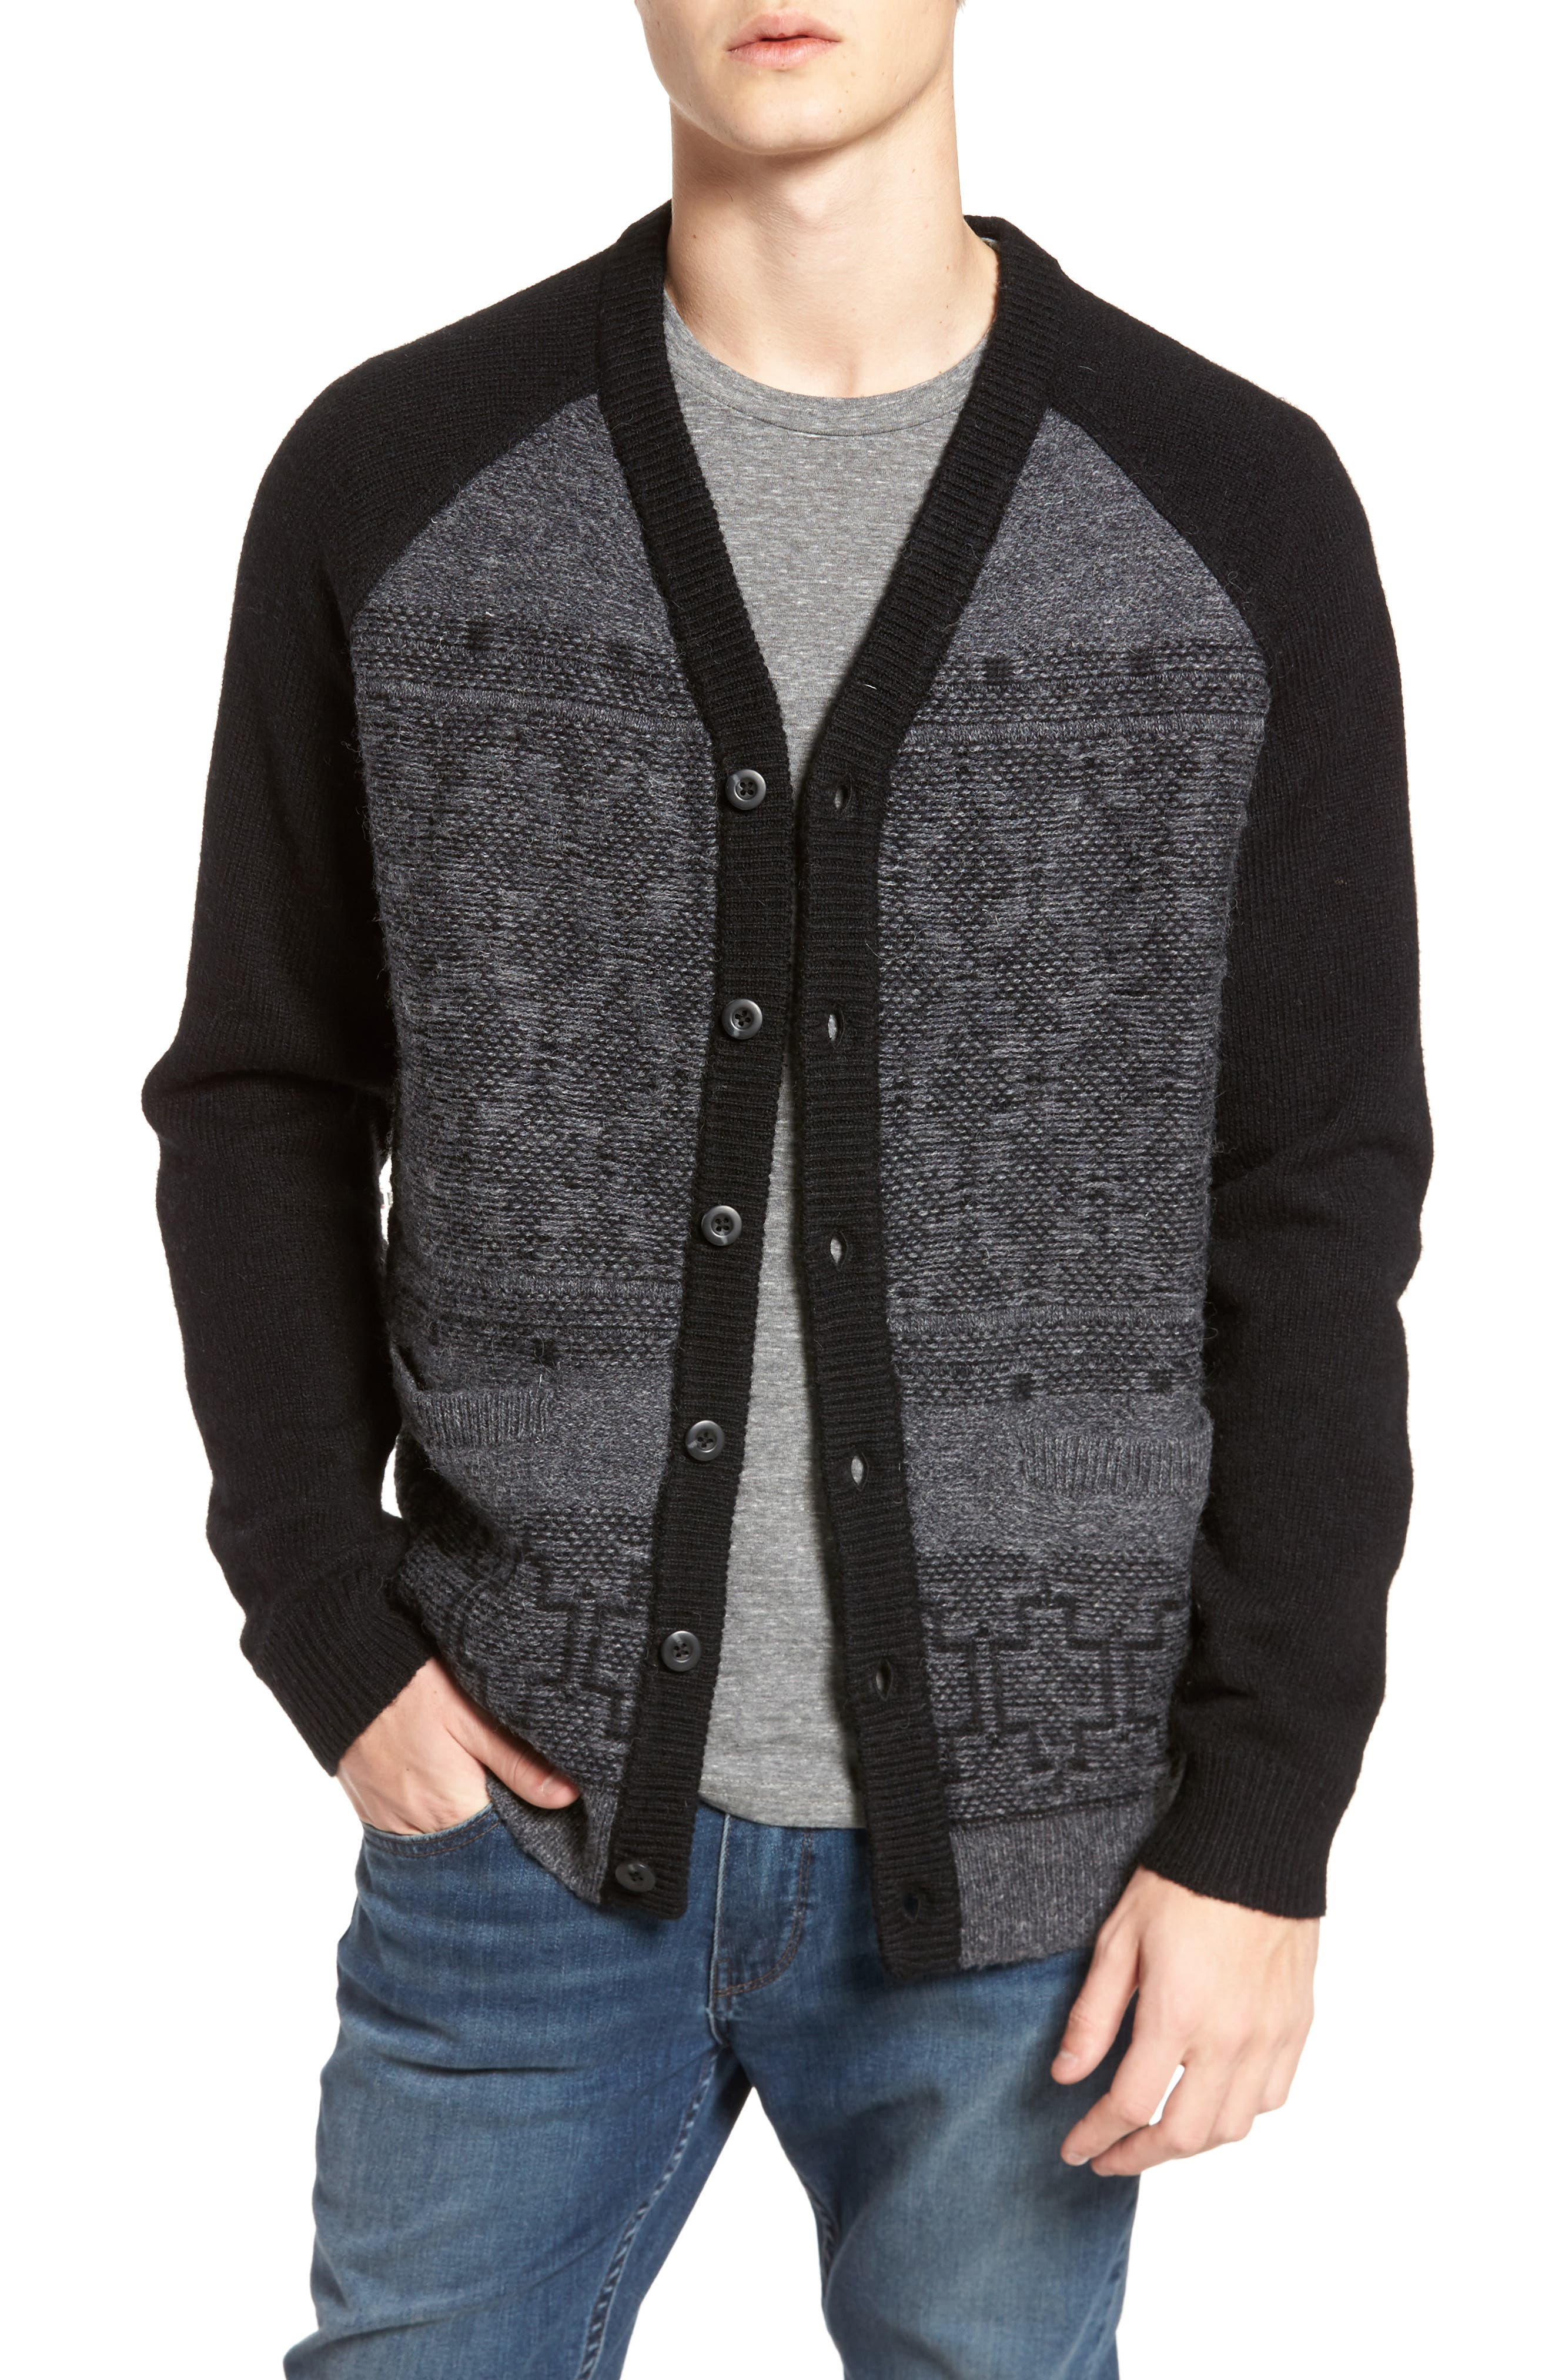 Waverly Cardigan,                         Main,                         color, 030